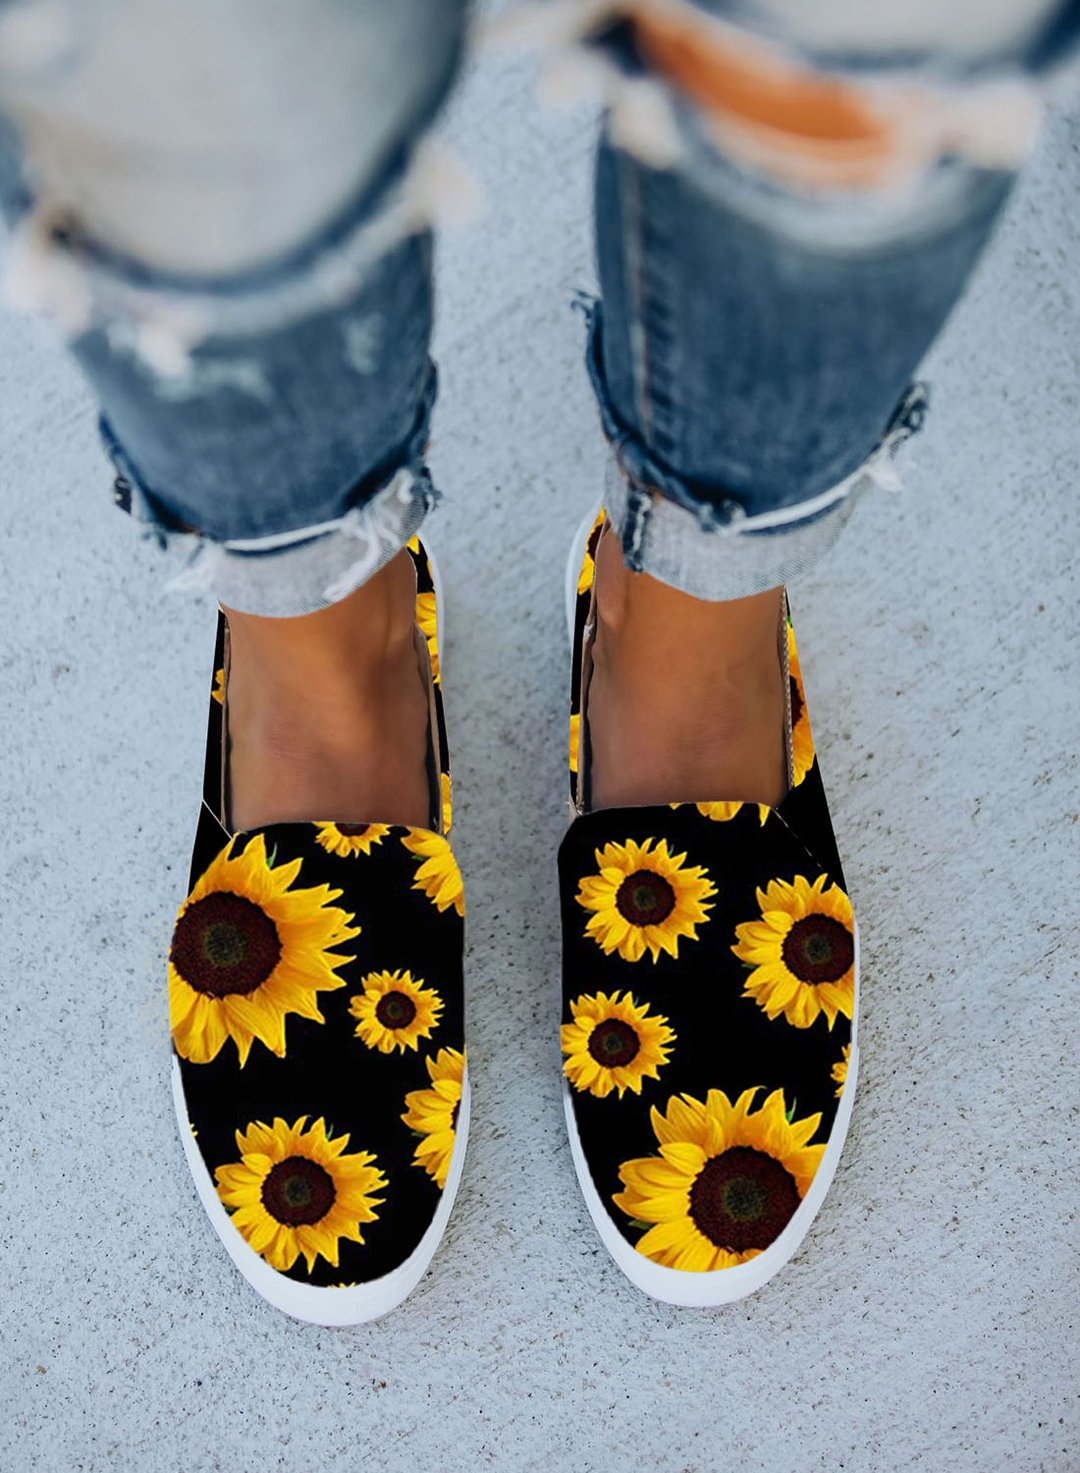 Black Women's Shoes Sunflower Allover Print Canvas Shoes LC121090-2